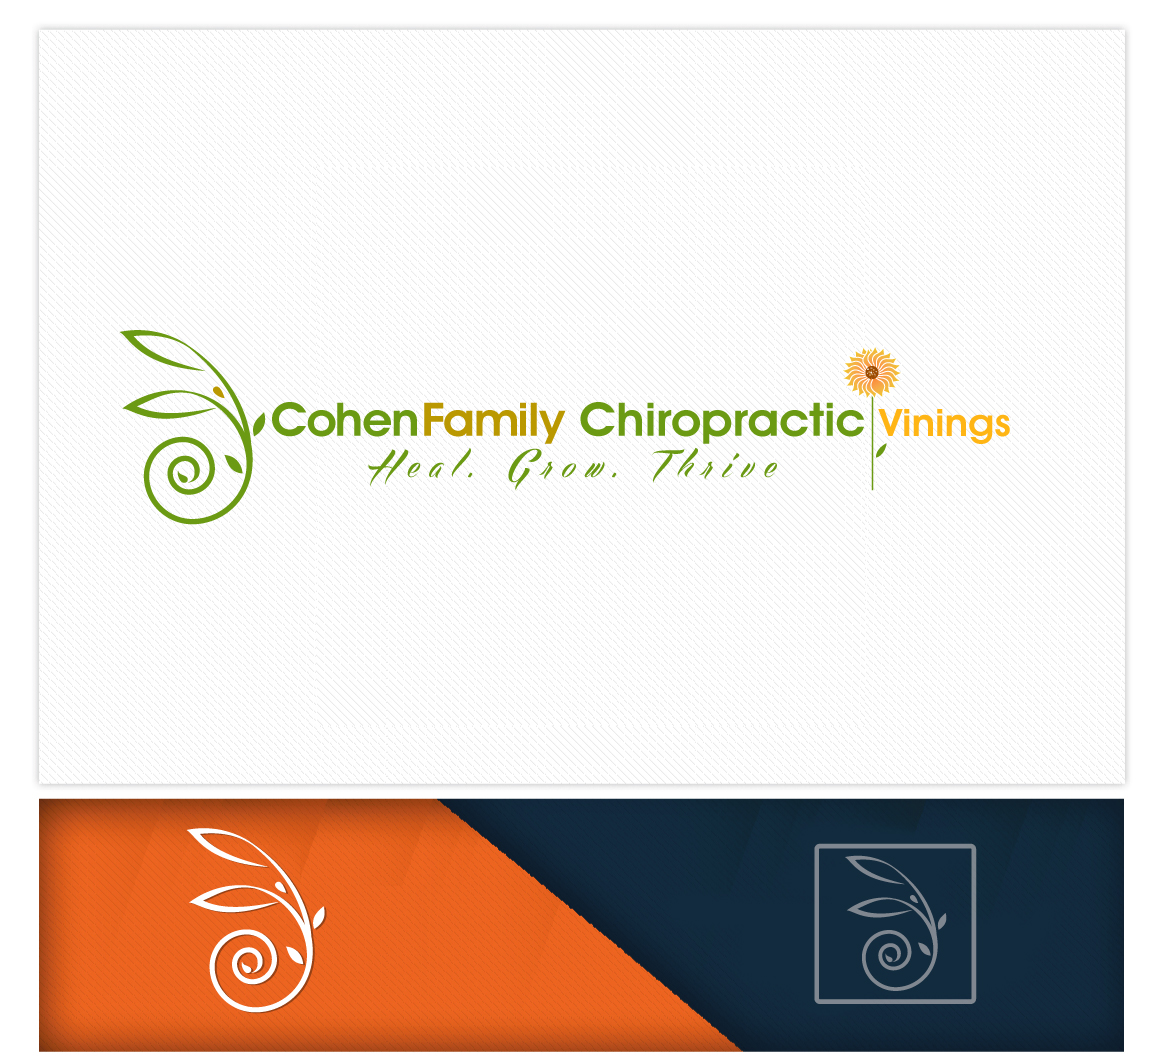 Logo Design by logodesign7434 - Entry No. 52 in the Logo Design Contest Unique Logo Design Wanted for Cohen Family Chiropractic.